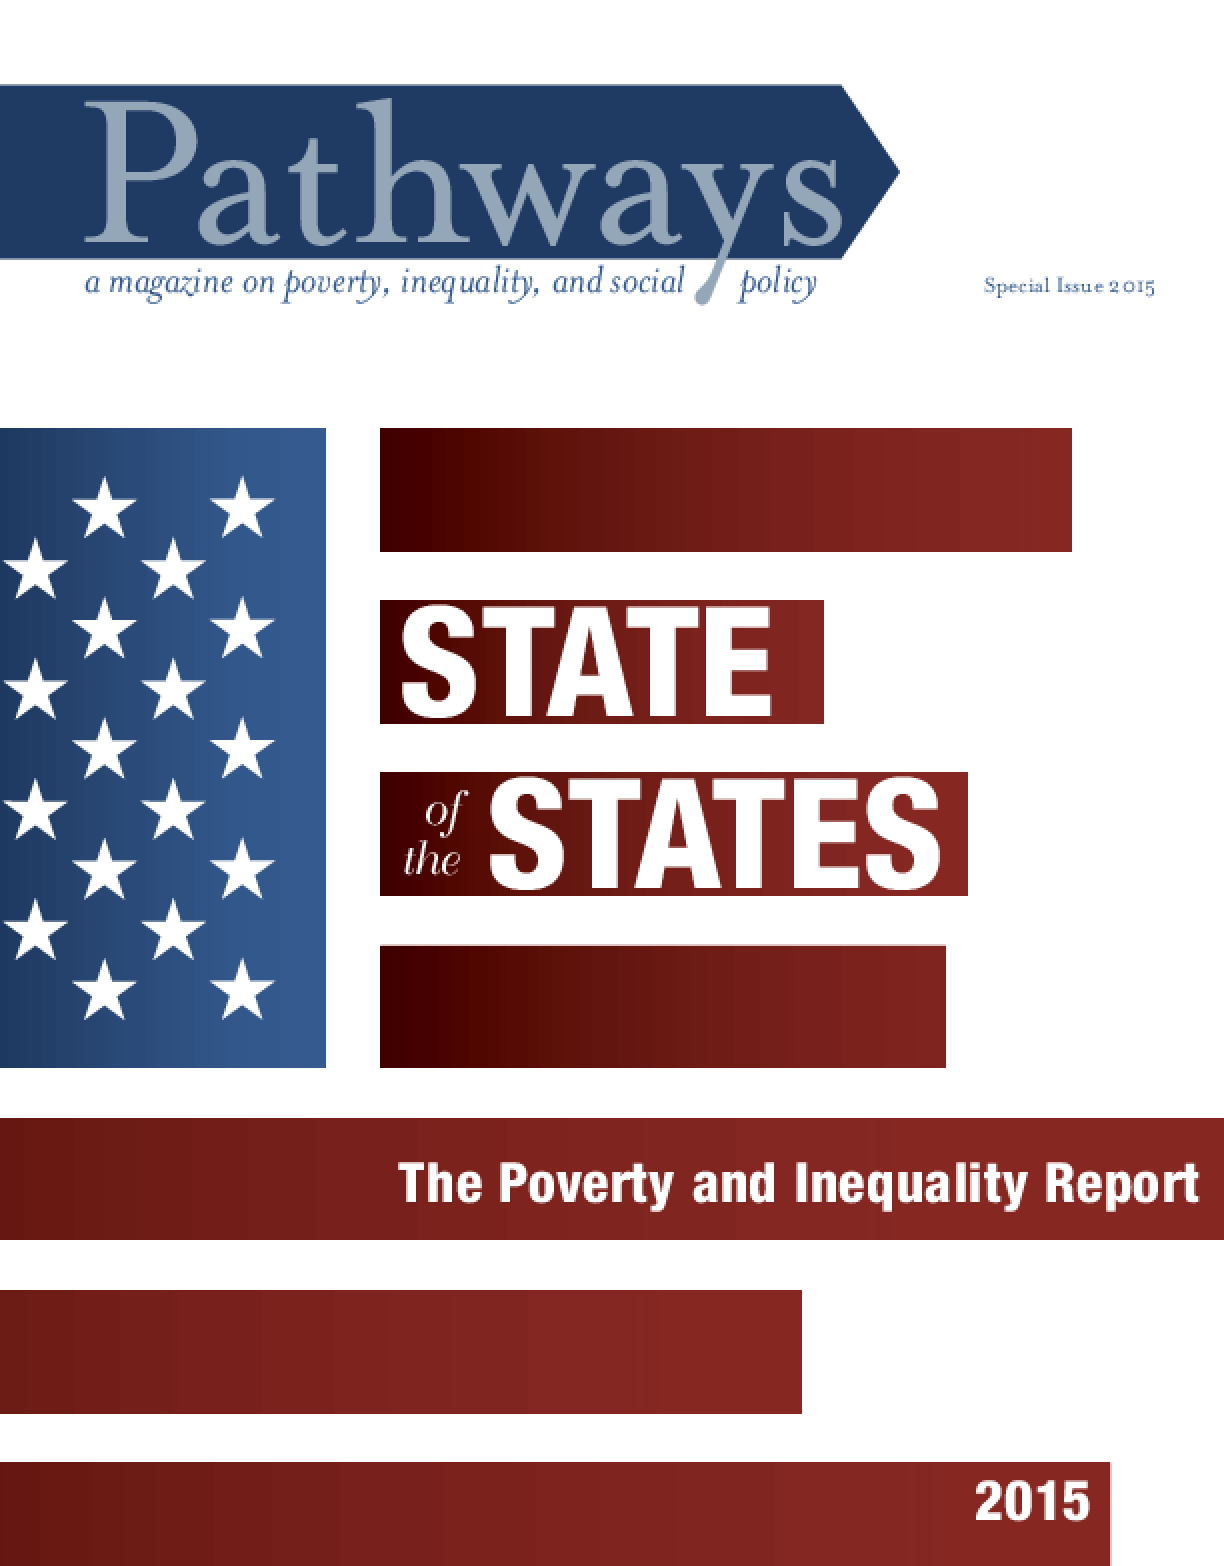 State of the States: The Poverty and Inequality Report